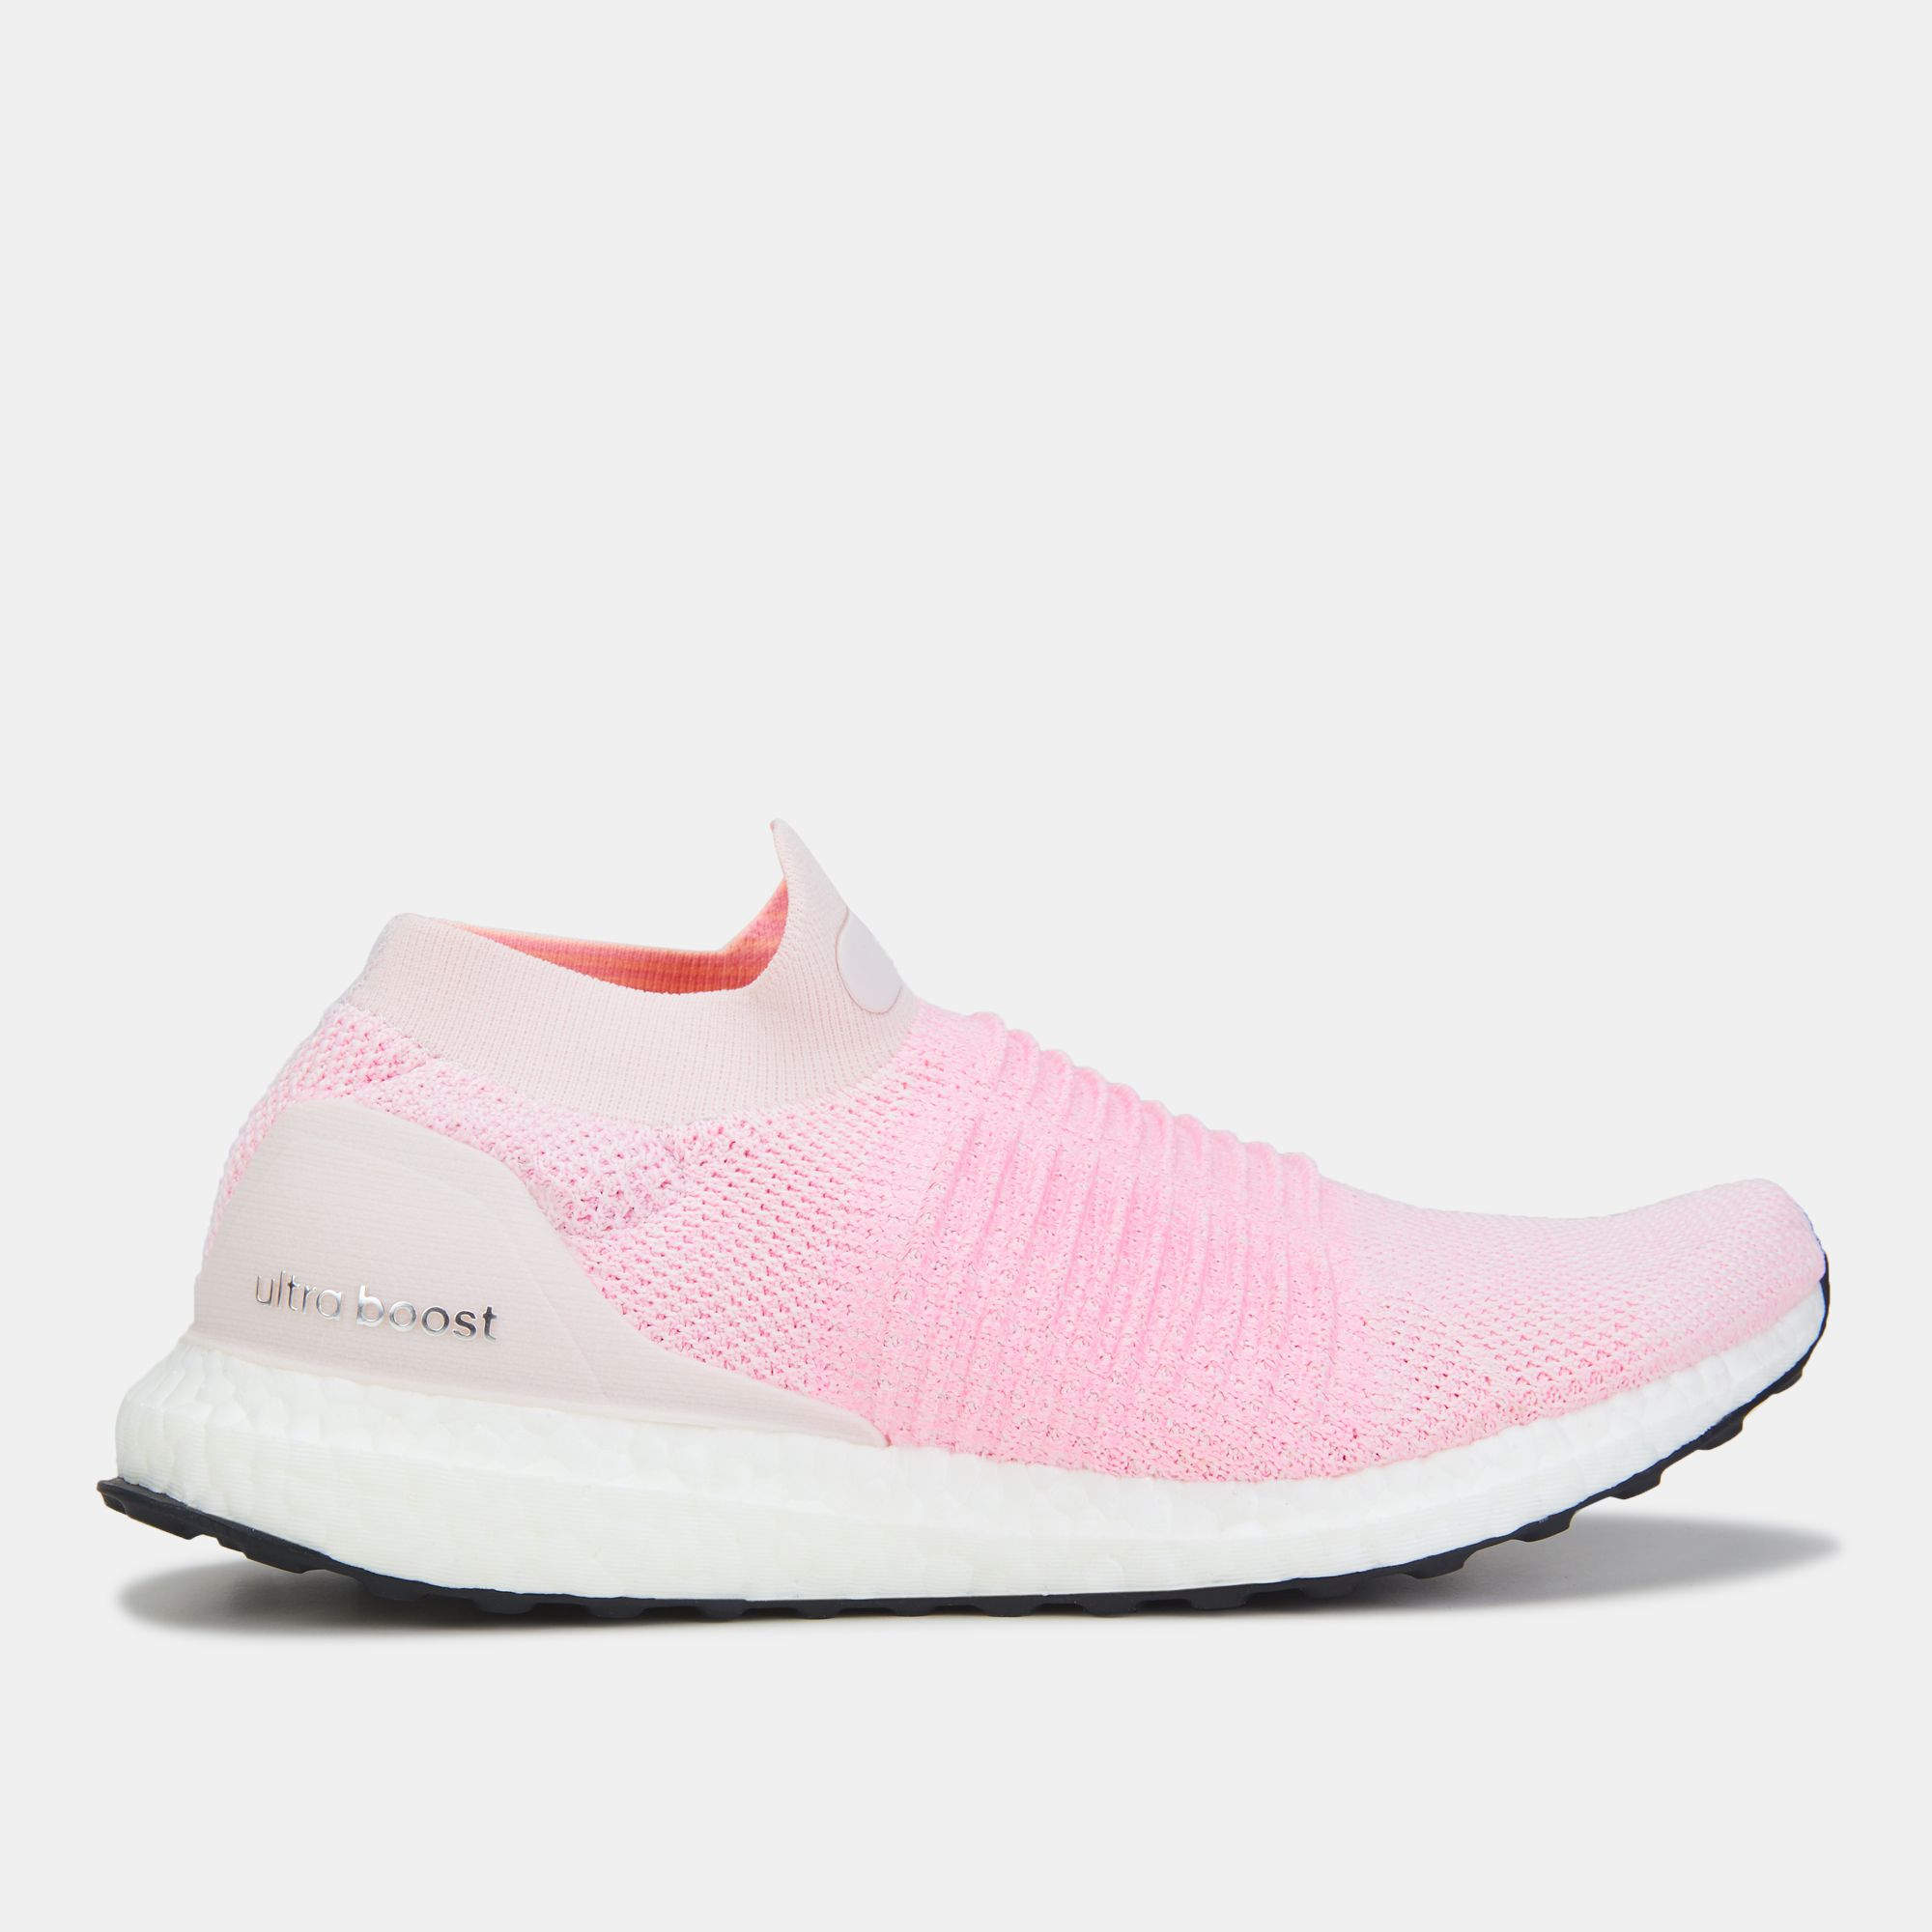 Adidas Womens Ultraboost Laceless Shoes